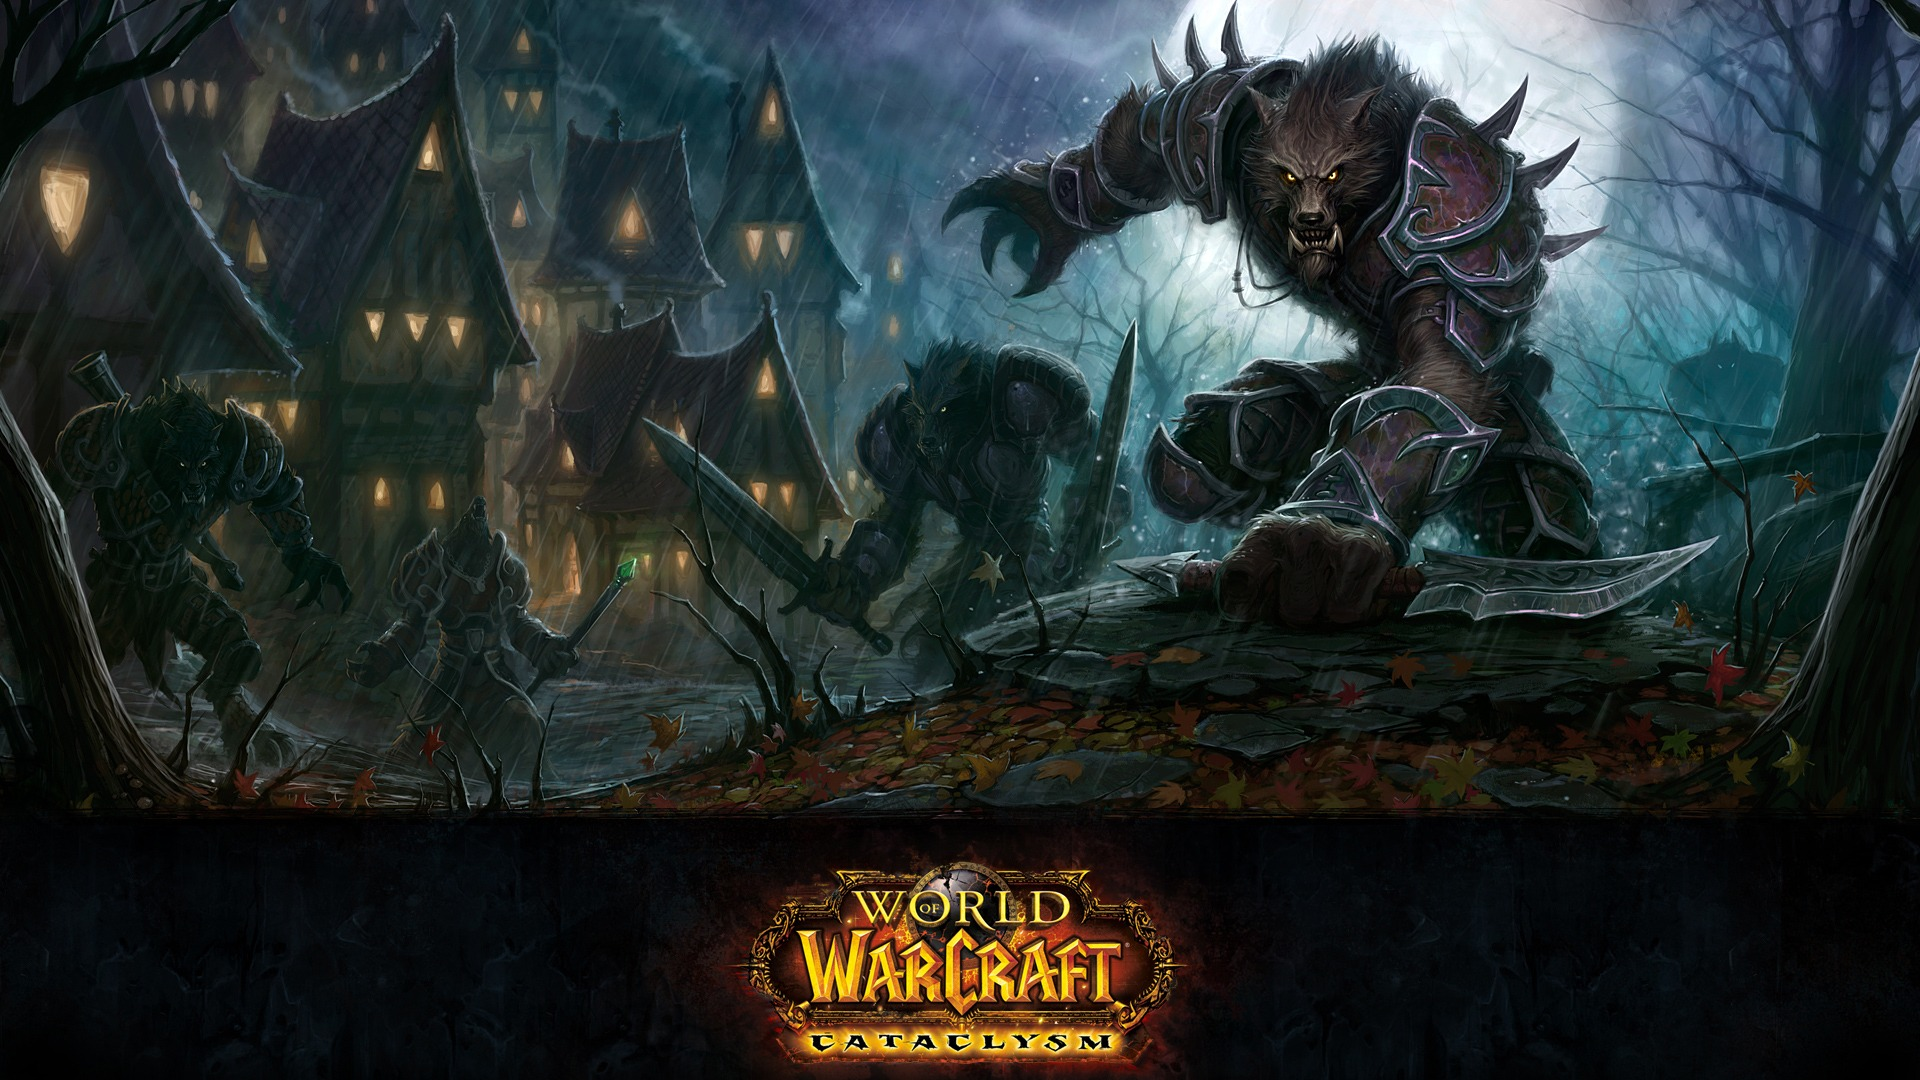 World Of Warcraft Hd 1080p 812 wallpaper